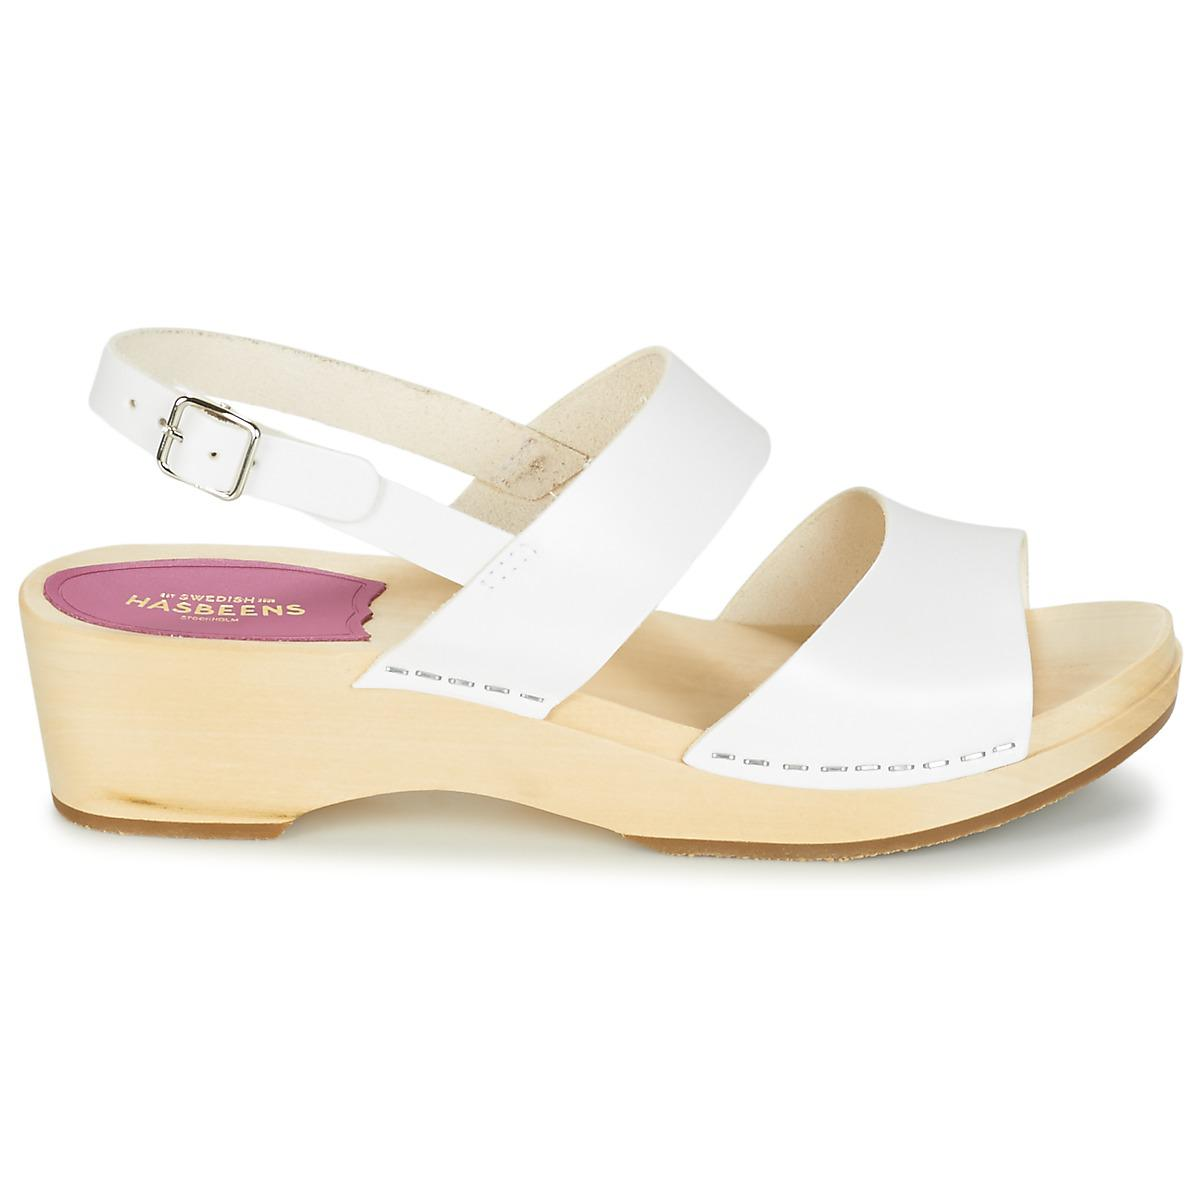 Swedish Hasbeens - Helena Women's Sandals In White - Lyst. View fullscreen